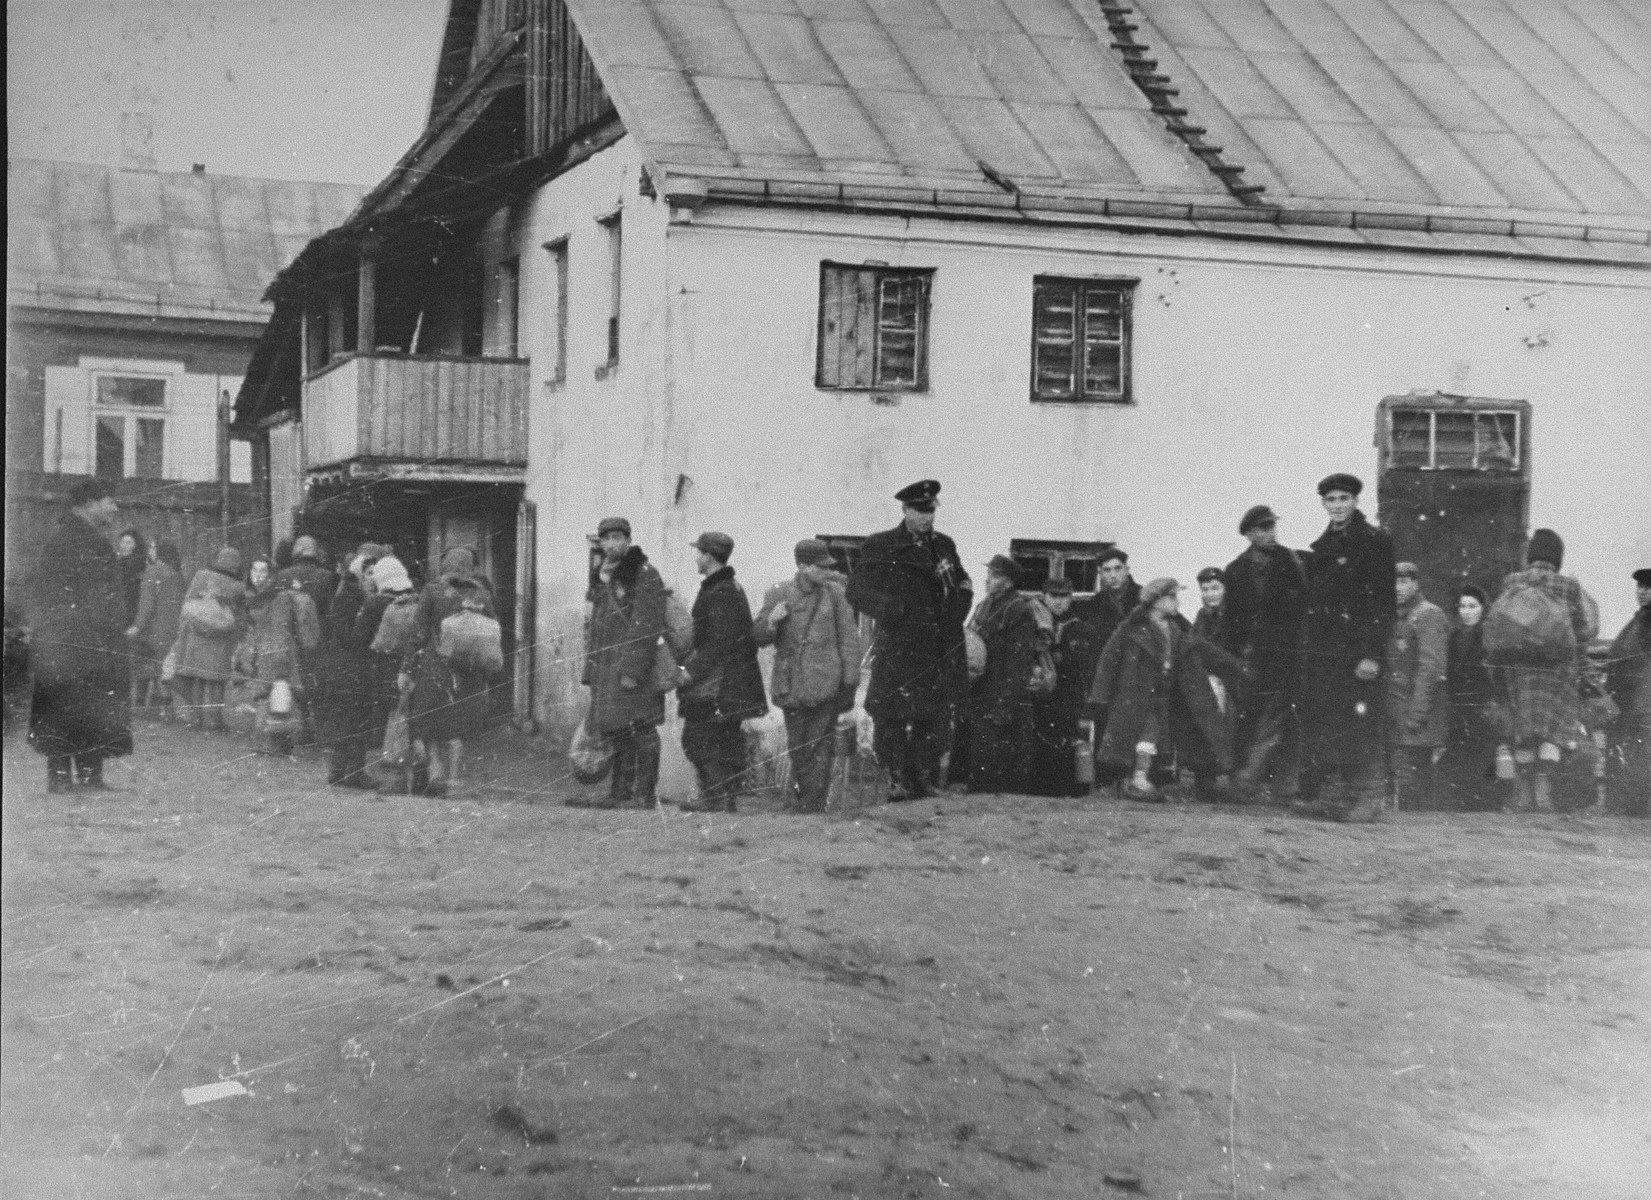 A group of Jews return to the ghetto after forced labor on the outside. Here, they line-up to be searched. Jewish police stand among them.